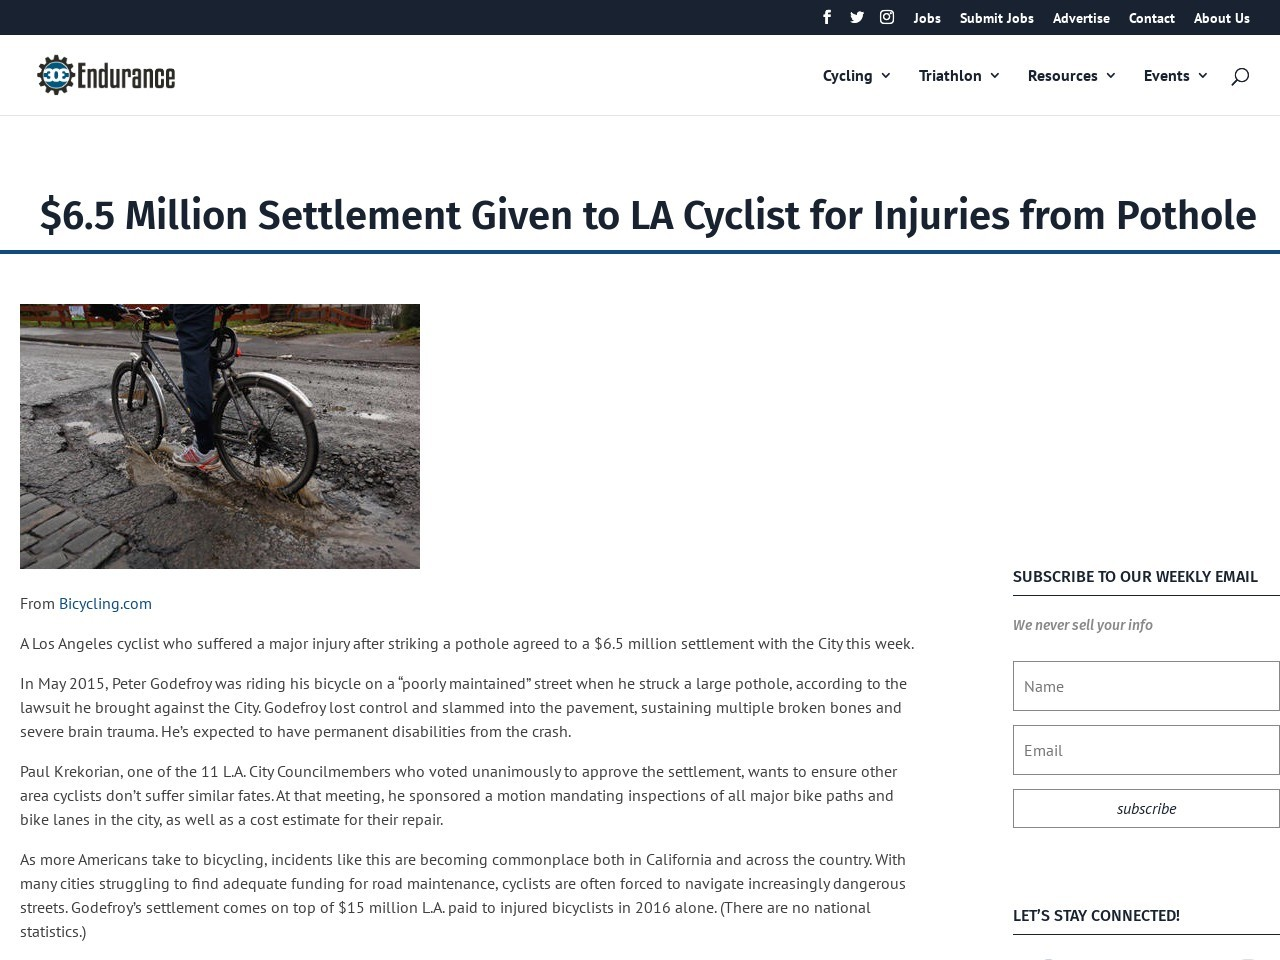 $6.5 Million Settlement Given to LA Cyclist for Injuries from Pothole